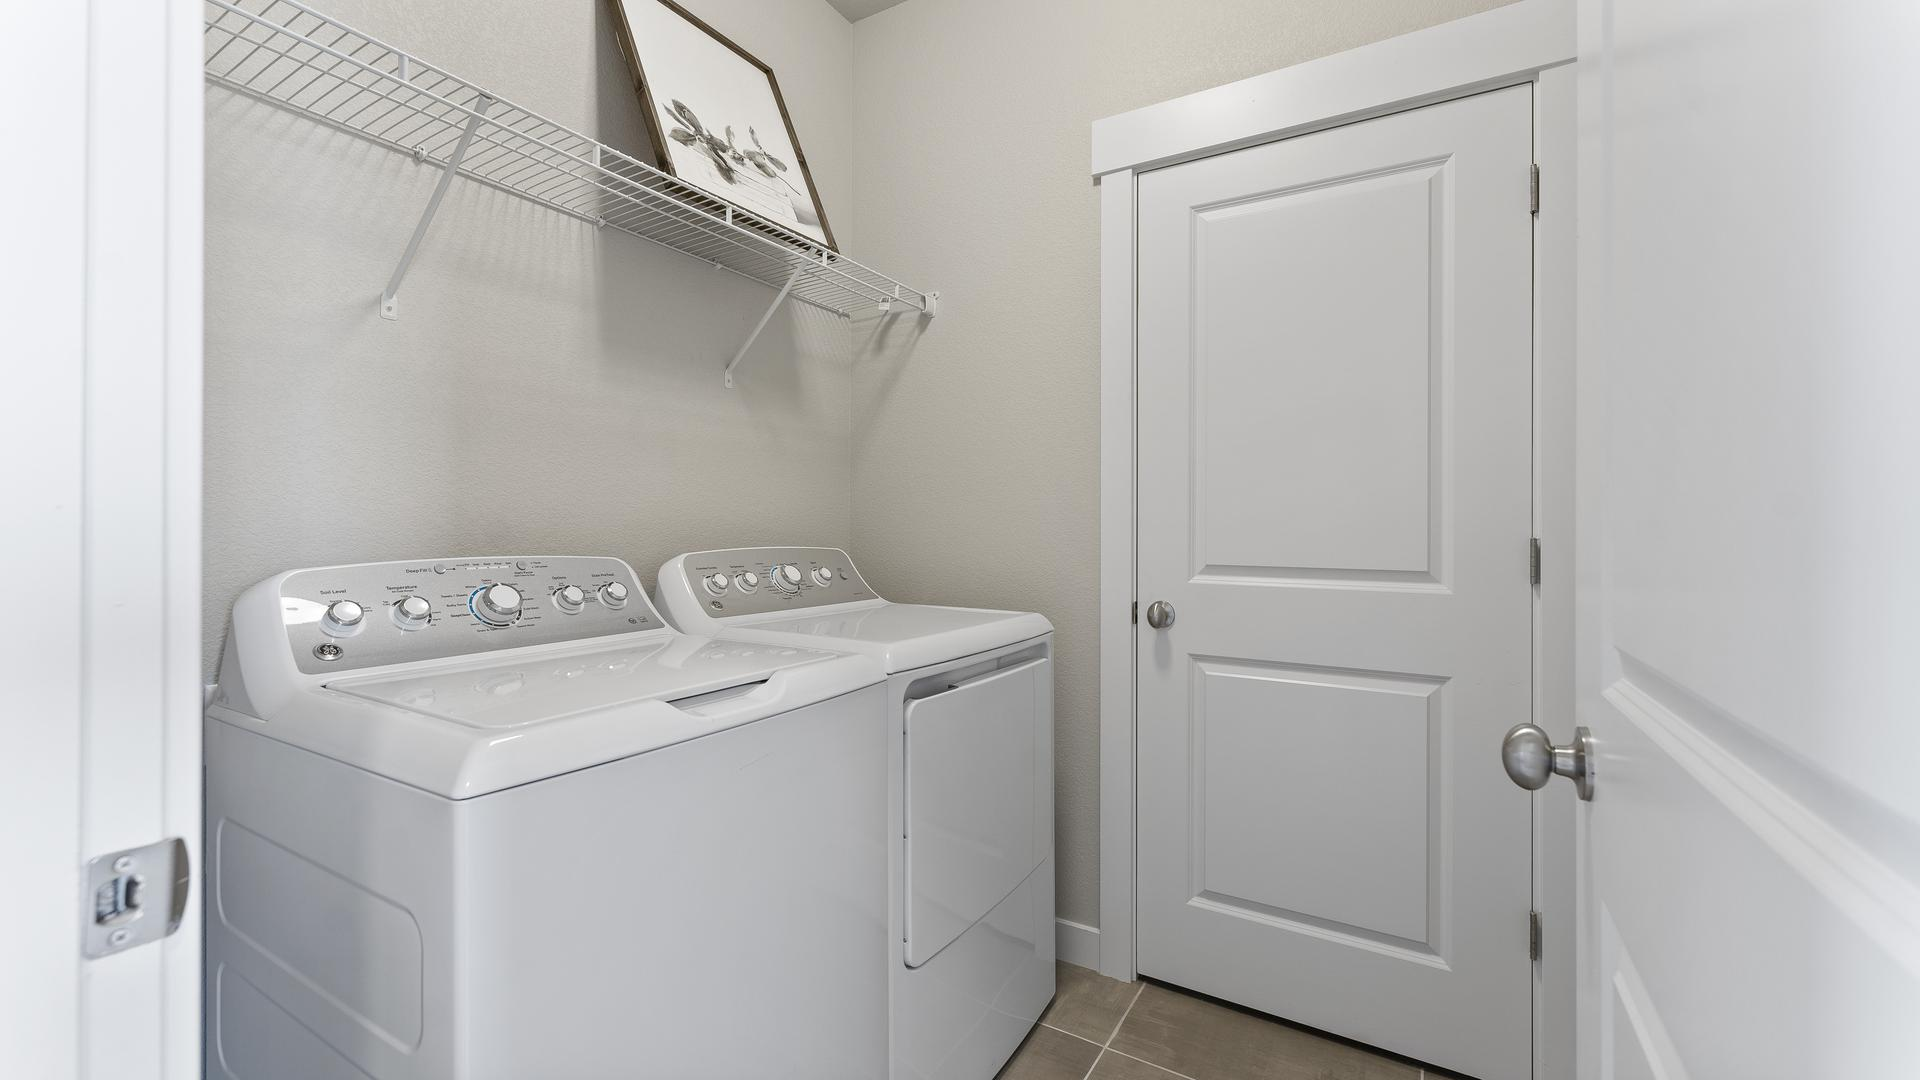 Laundry Room  - Not Actual Home - Finishes Will Vary